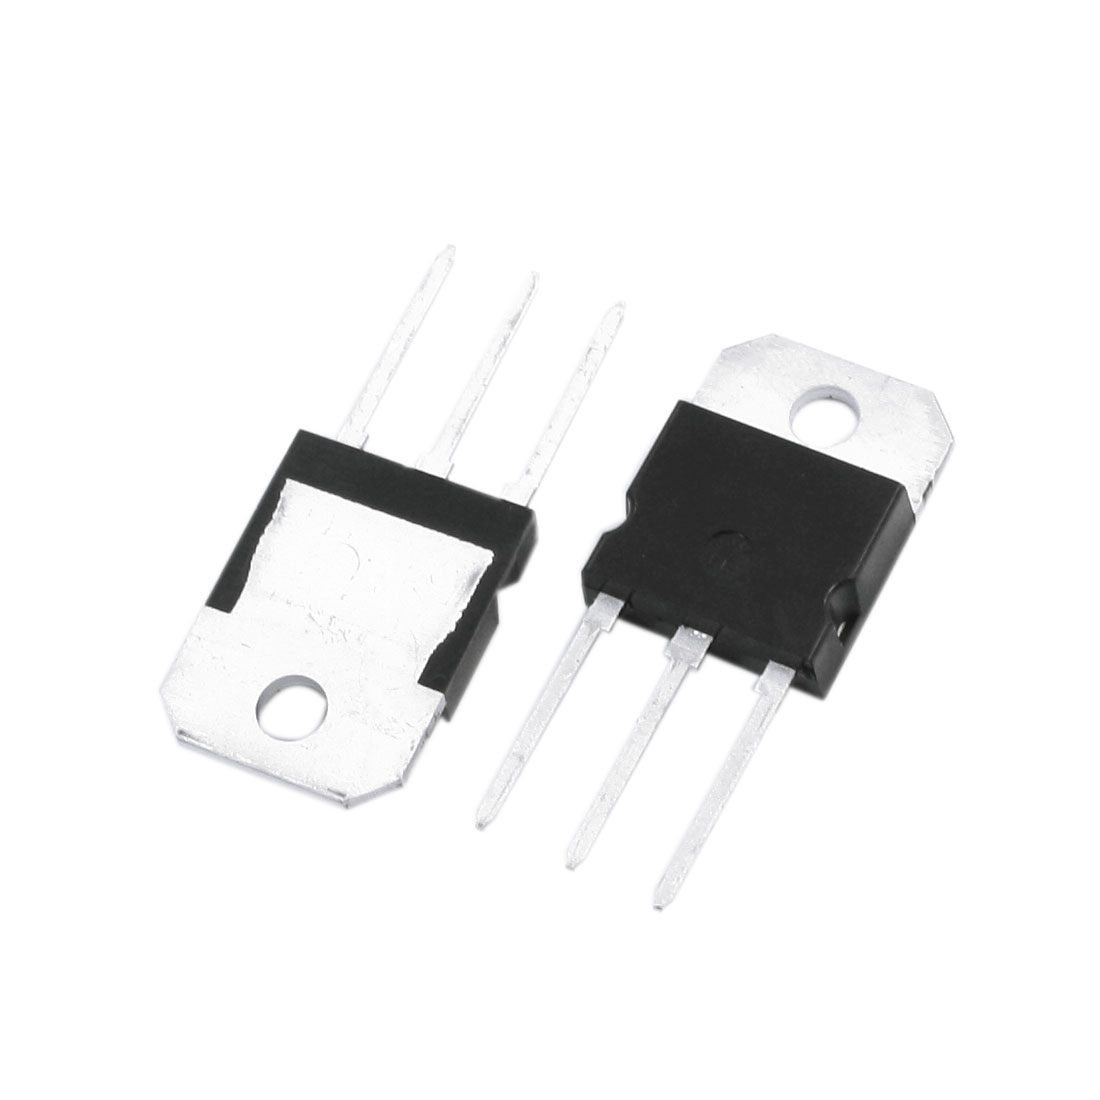 2Pcs MUR3060PTG Electronic 3 Poles Ultrafast Recovery Power Rectifier Diode